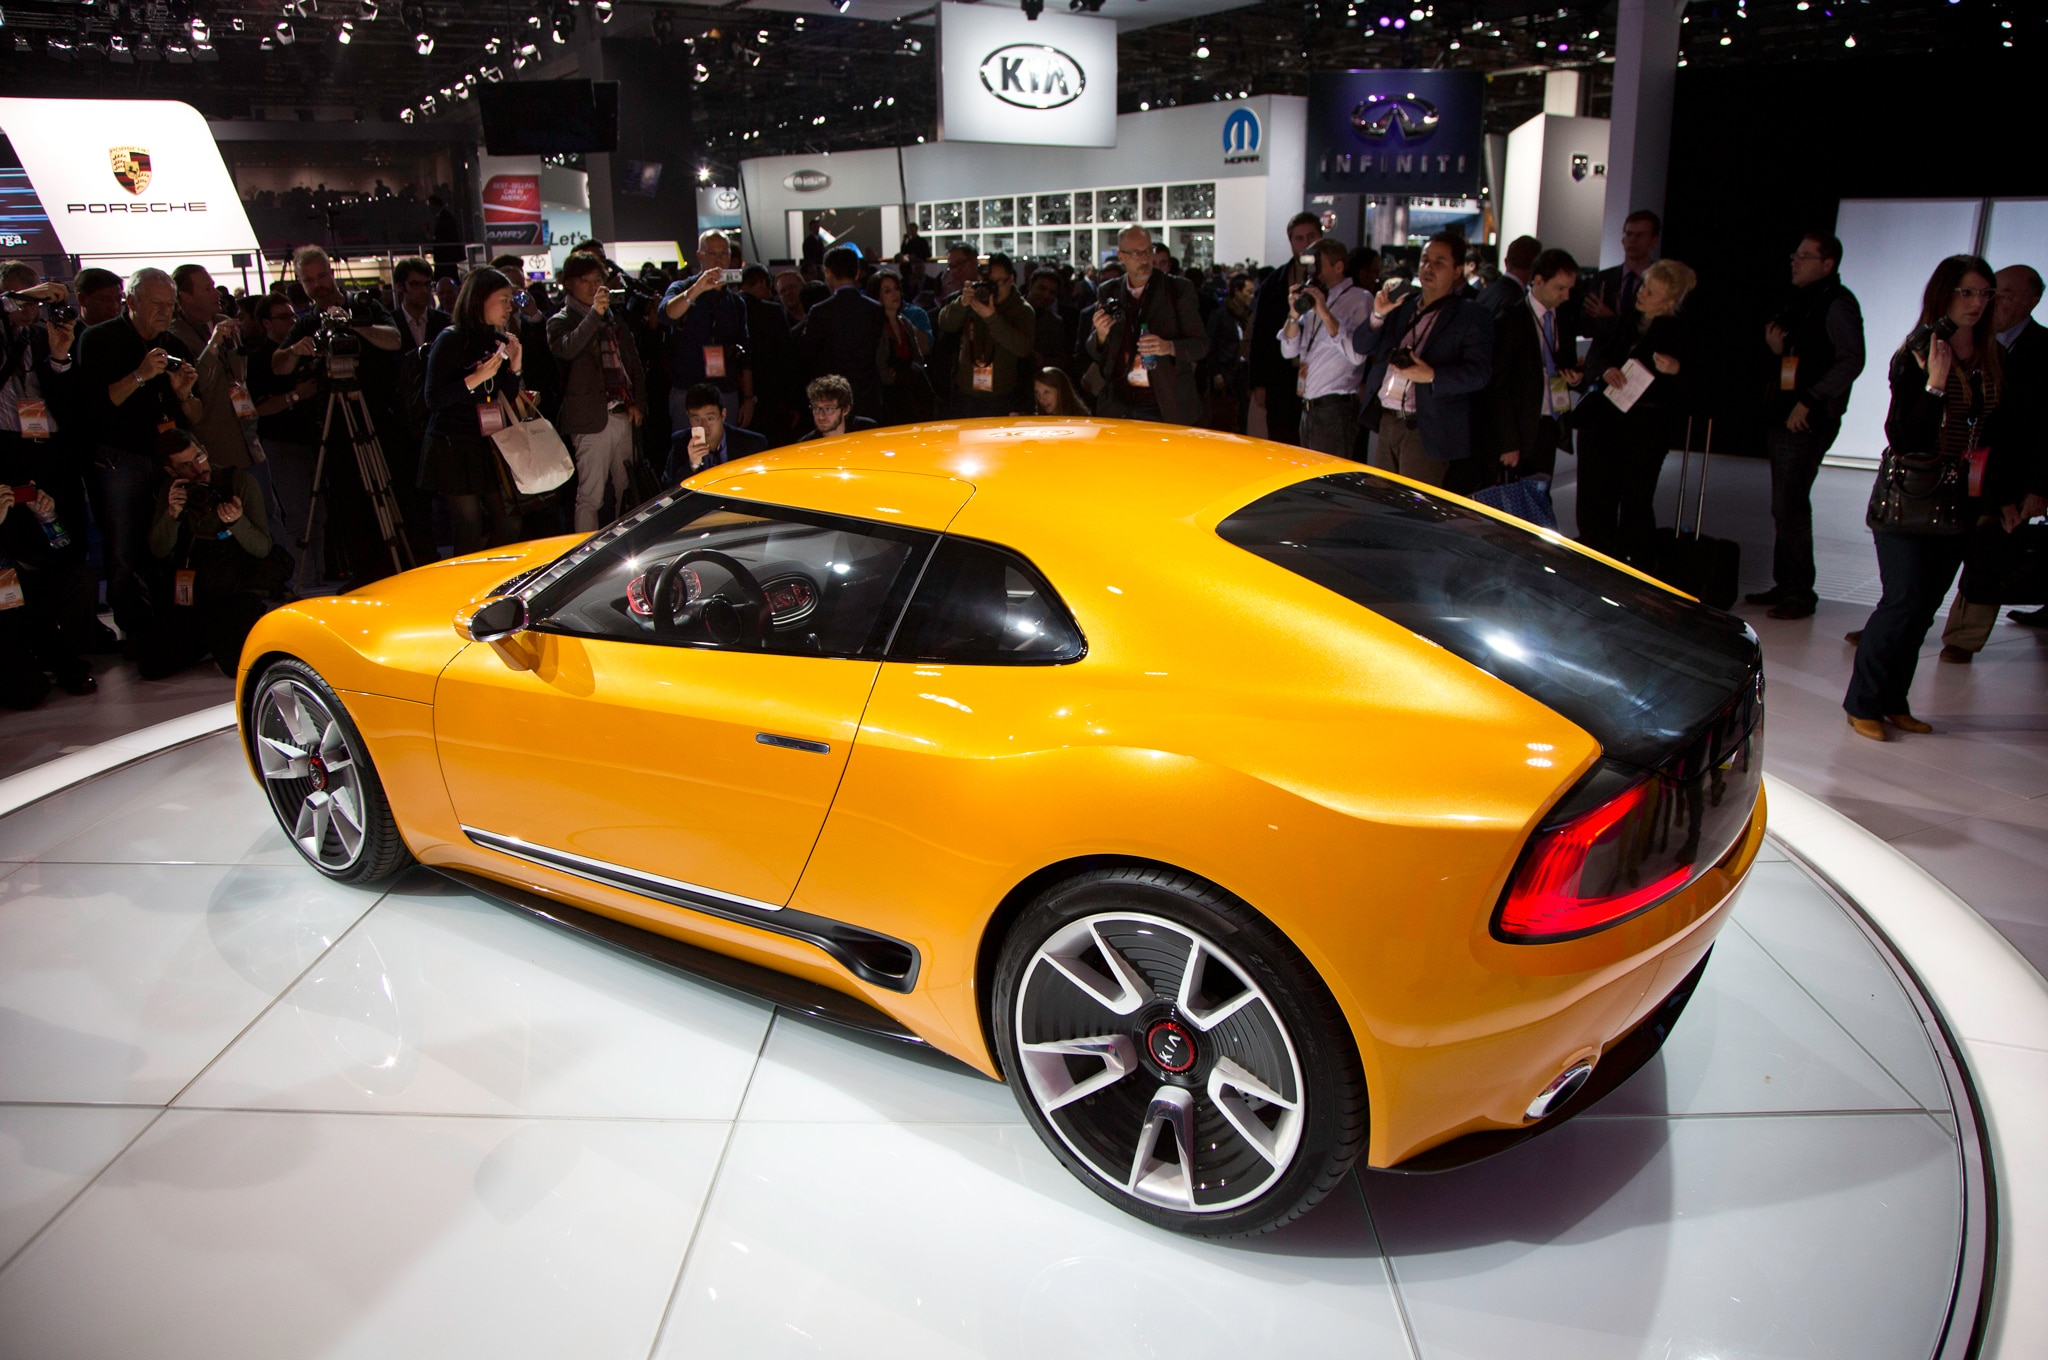 New Sports Car For Kia